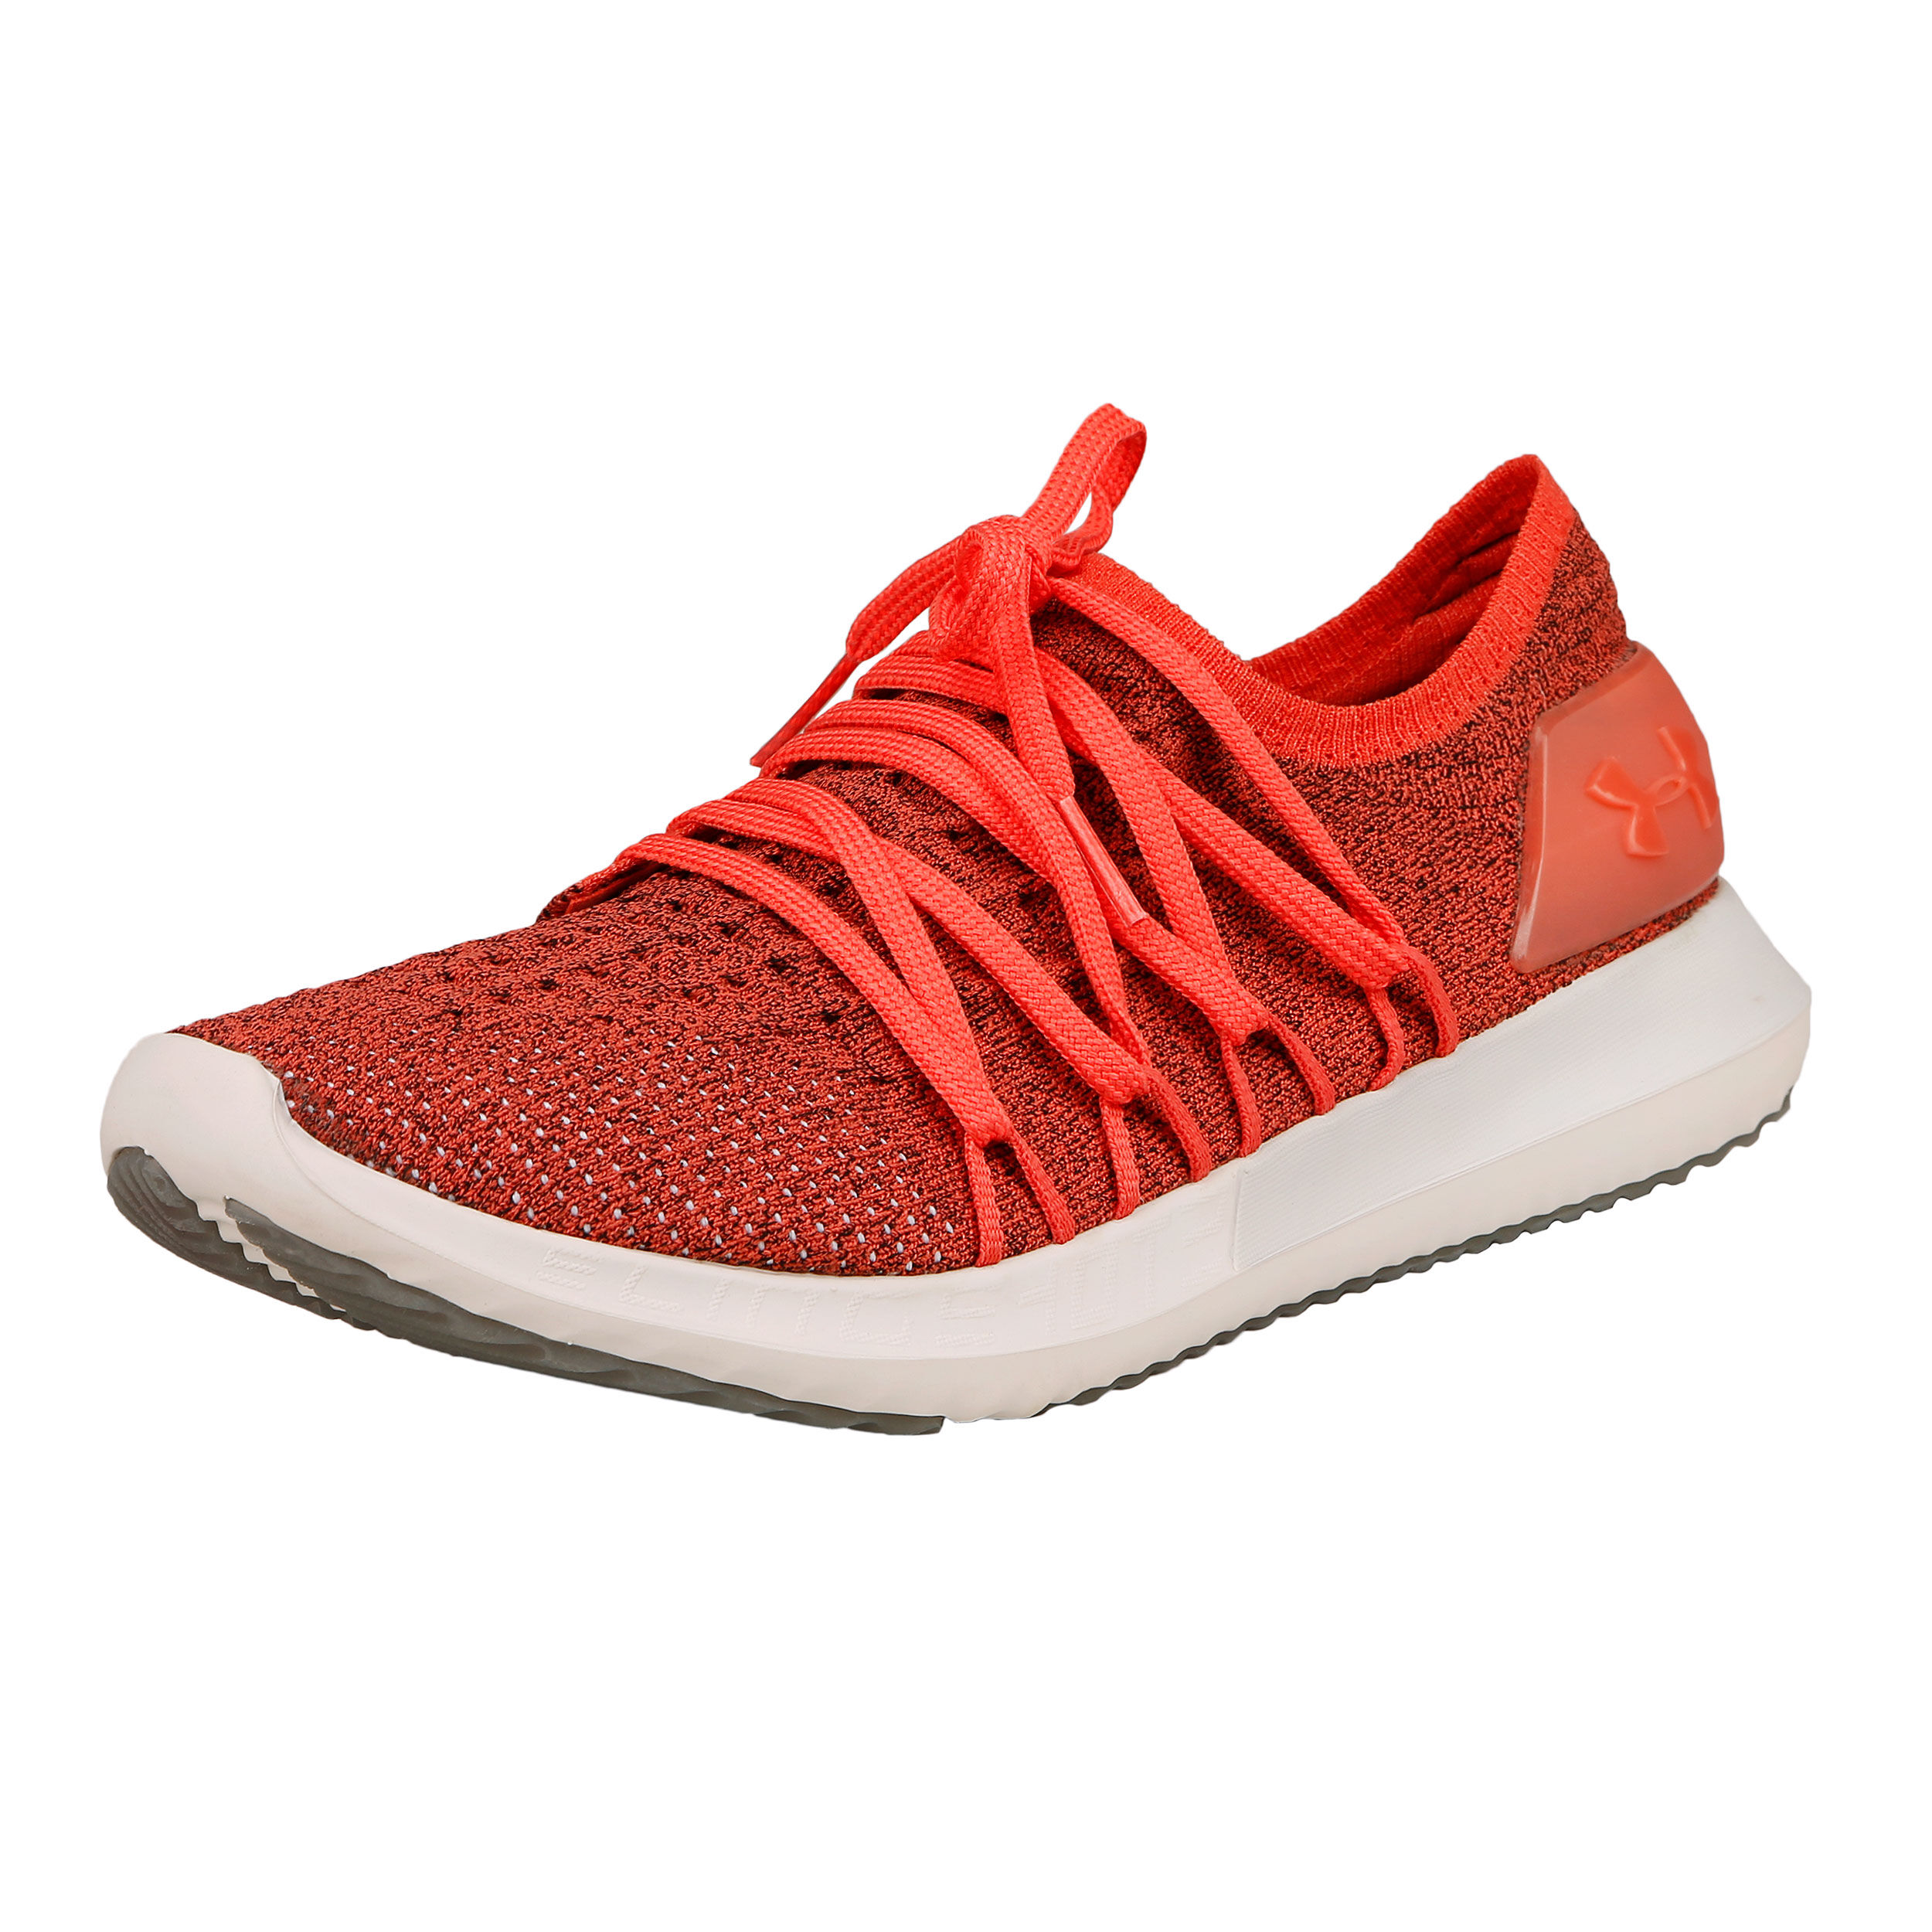 Under Armour Speedform Slingshot 2 Fitnessschoen Dames